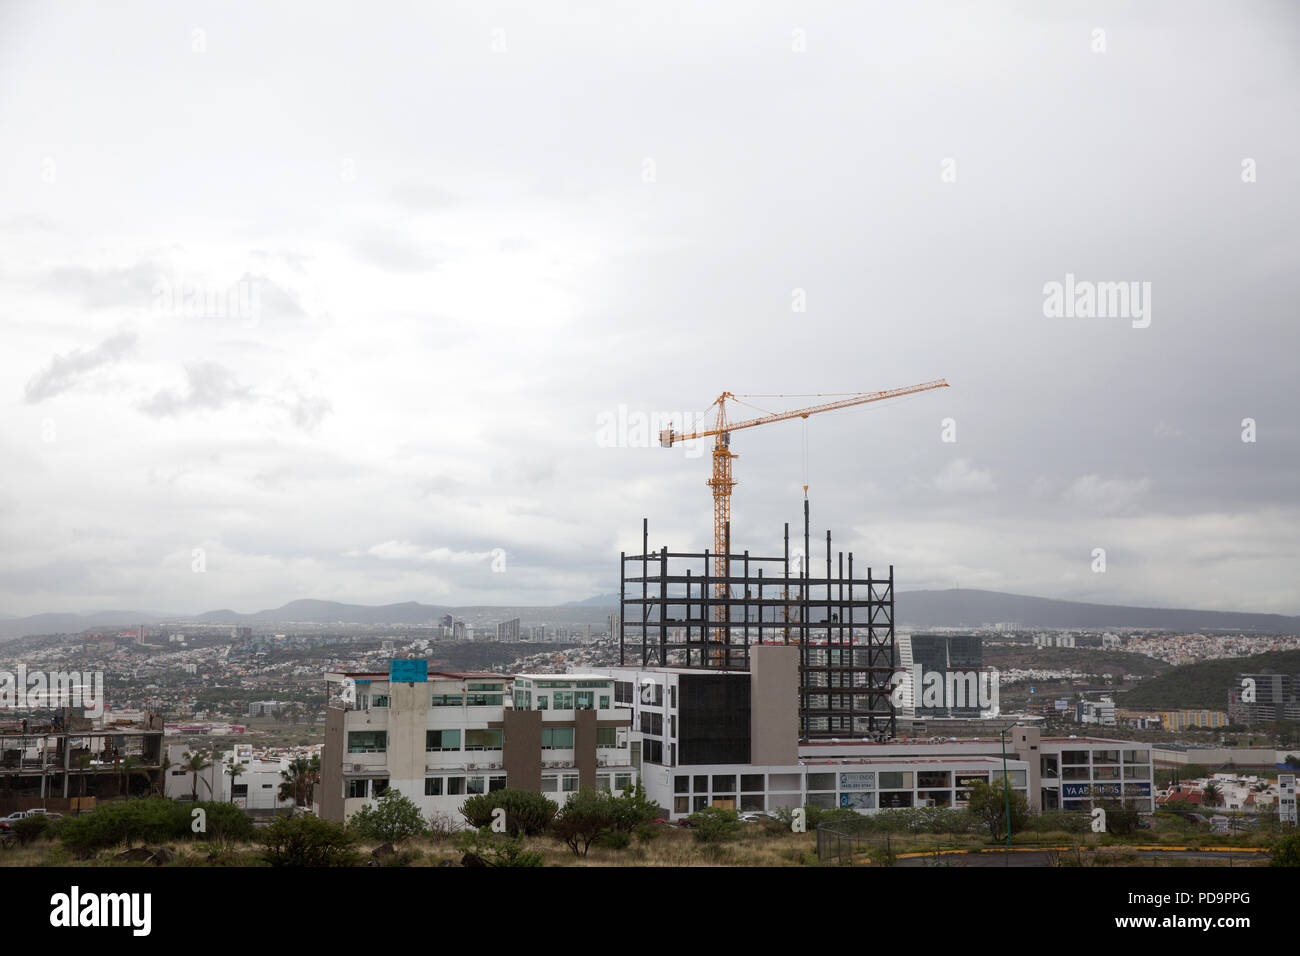 Skyline view of Querétaro from the outskirts, capital city of Querétaro state, Mexico on June 19, 2018. Photo credit by Bénédicte Desrus - Stock Image